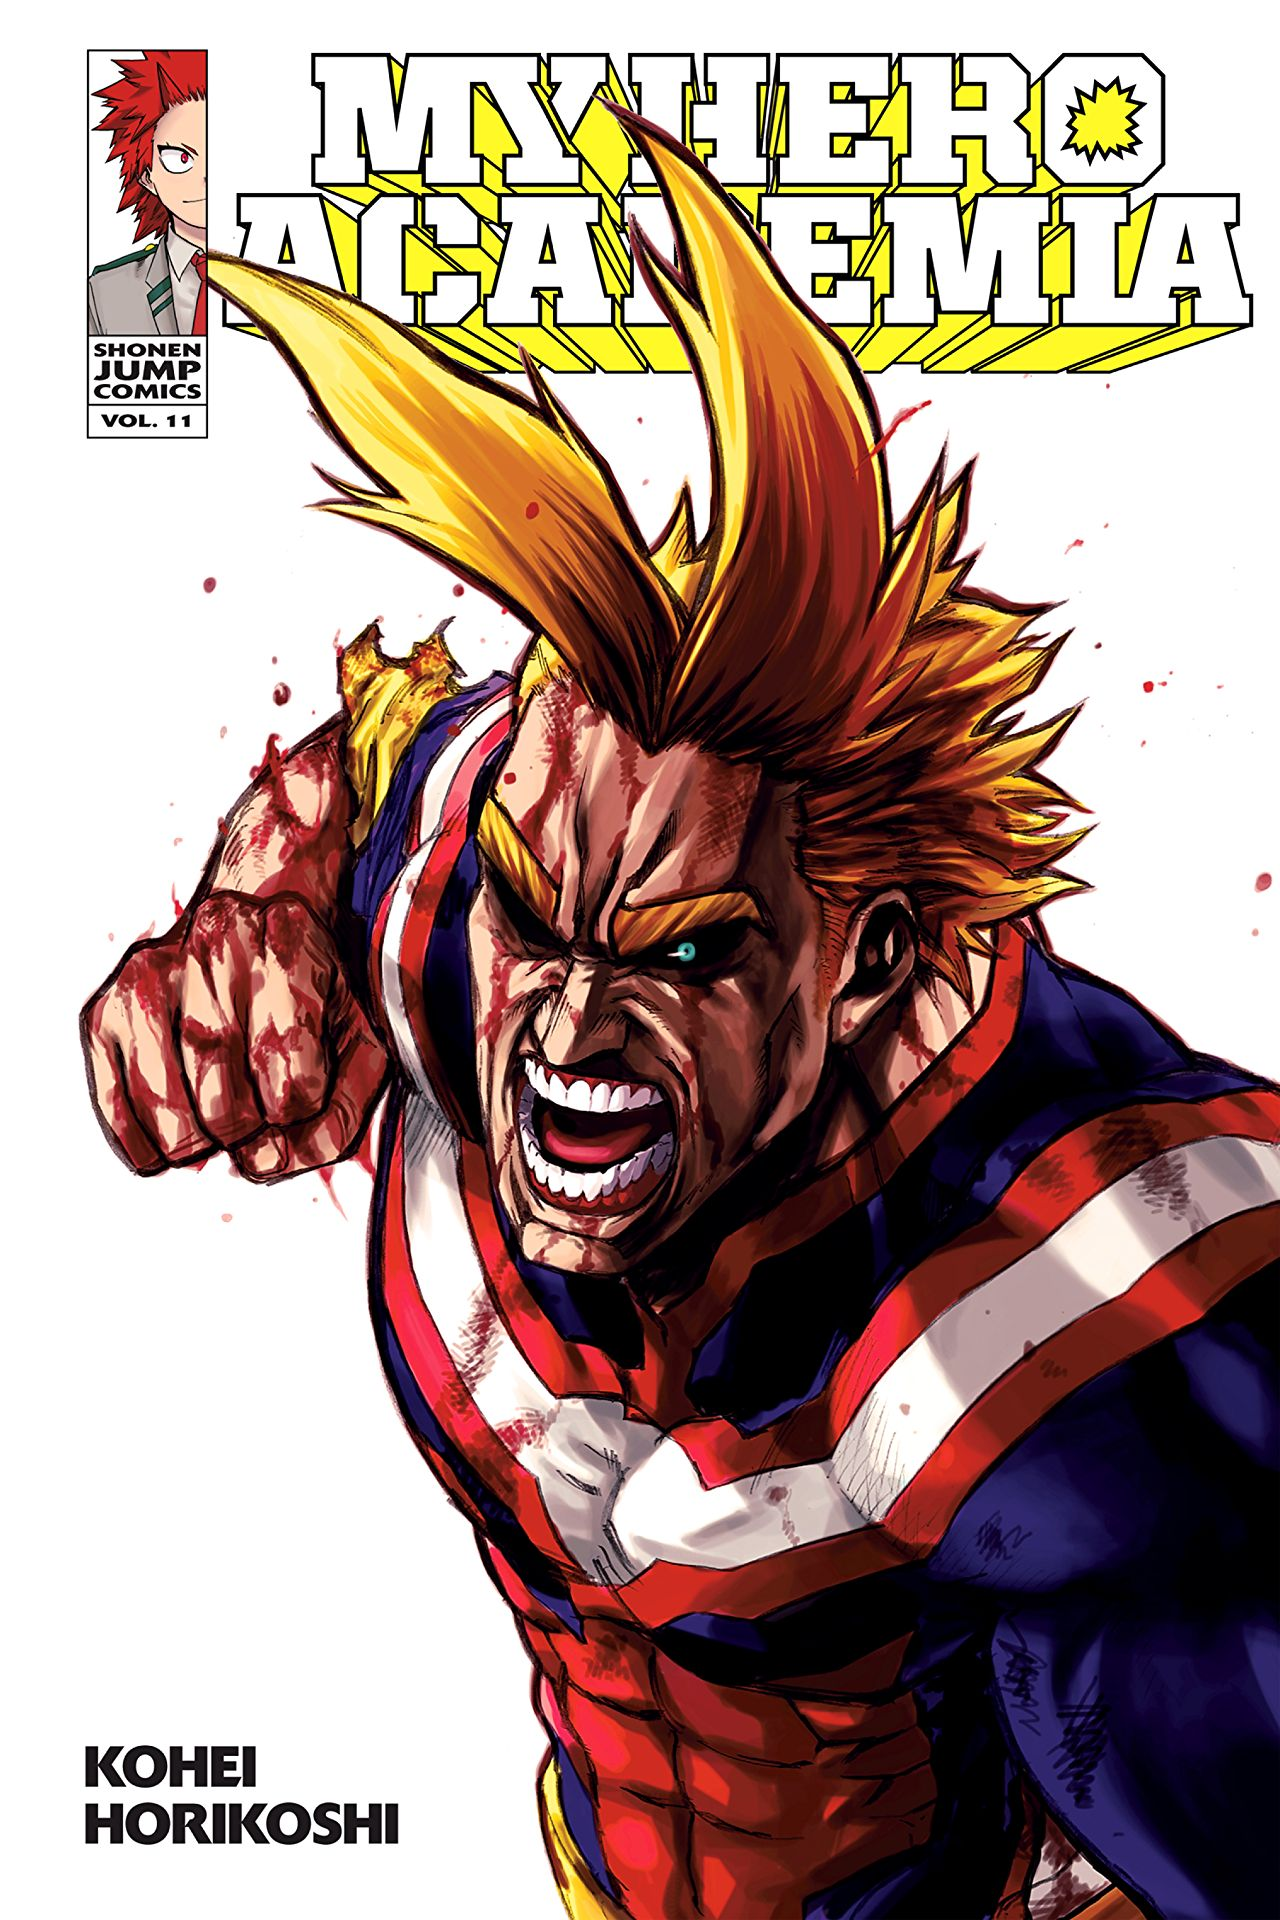 My Hero Academia Vol. 11 Review